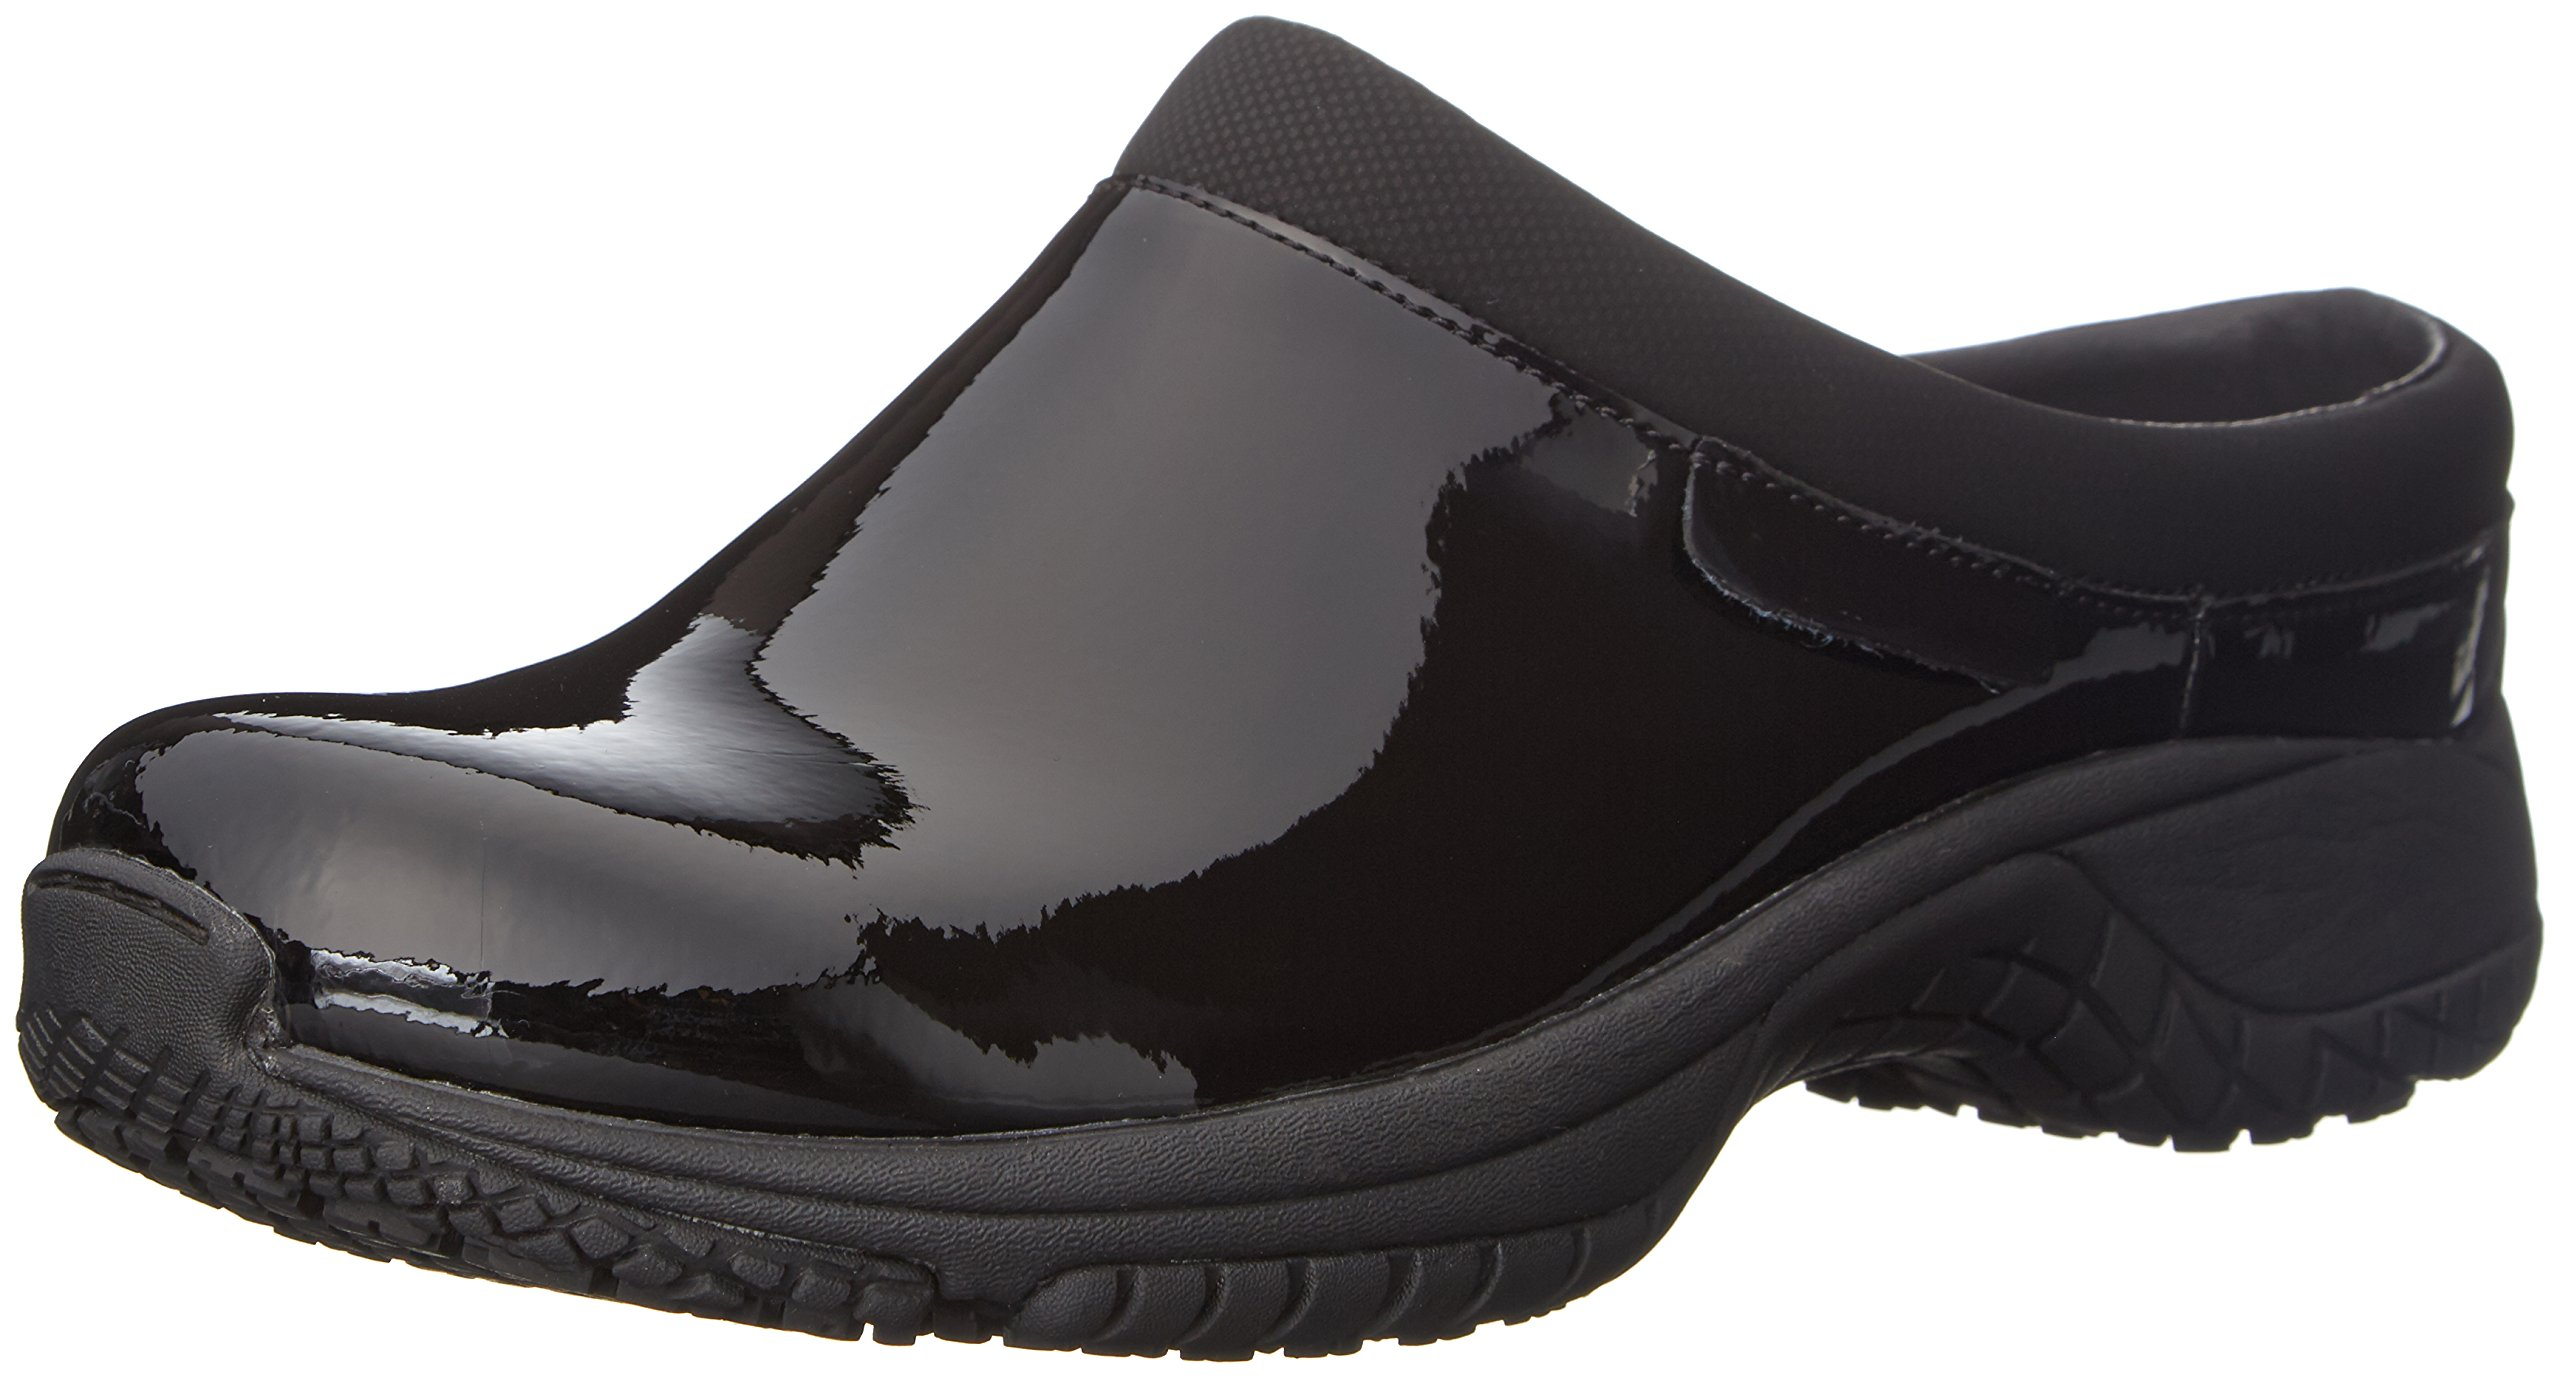 Merrell Women's Encore Slide Pro Shine Slip-Resistant Work Shoe, Black Shine Patent, 8.5 M US